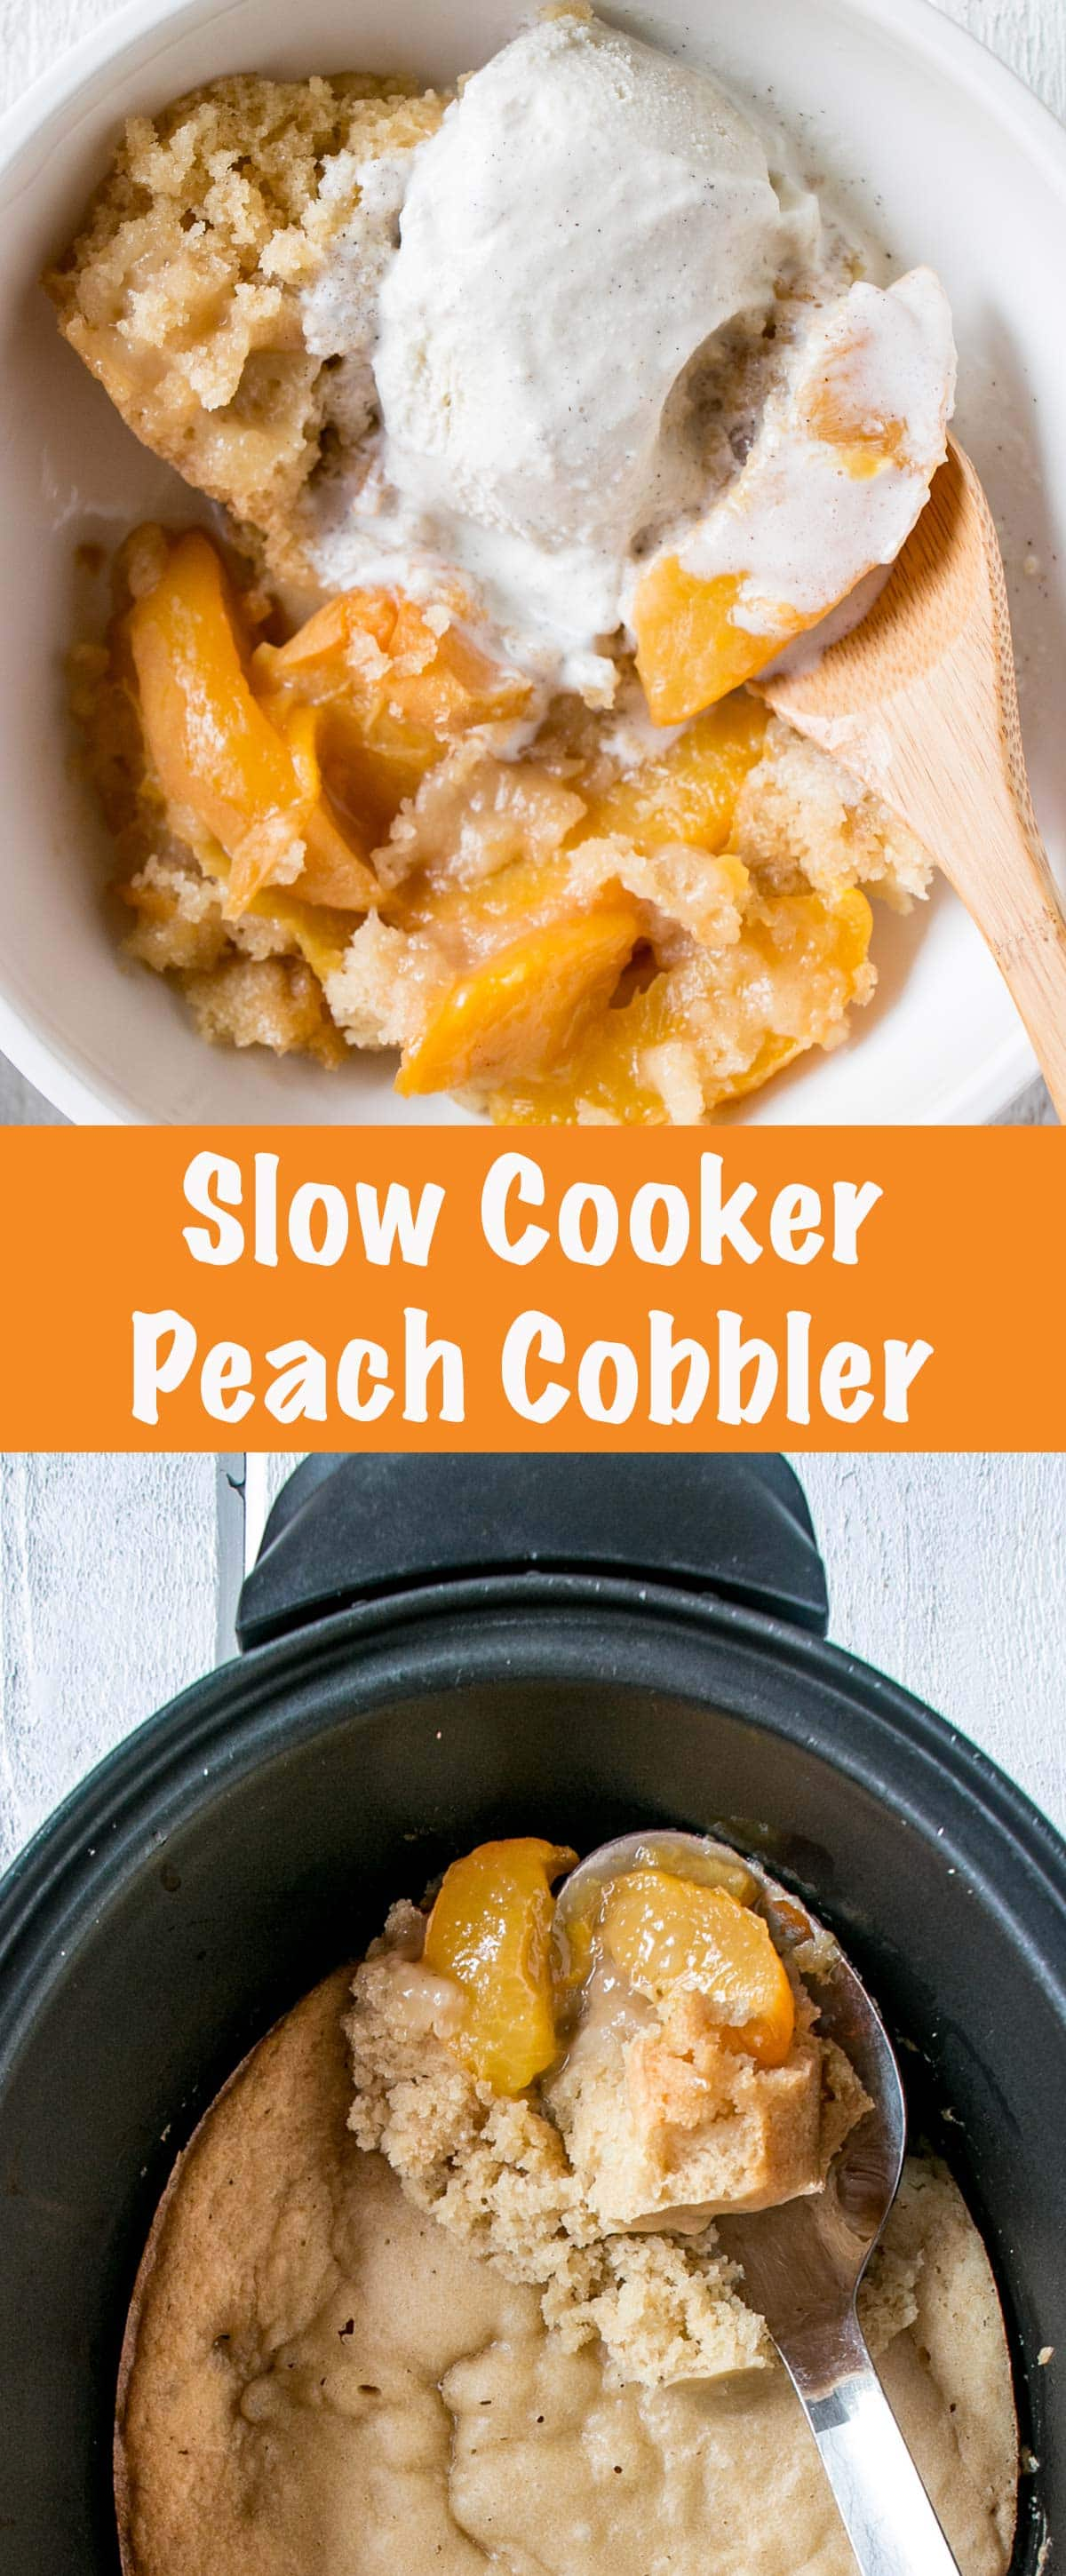 Slow Cooker Peach Cobbler long collage